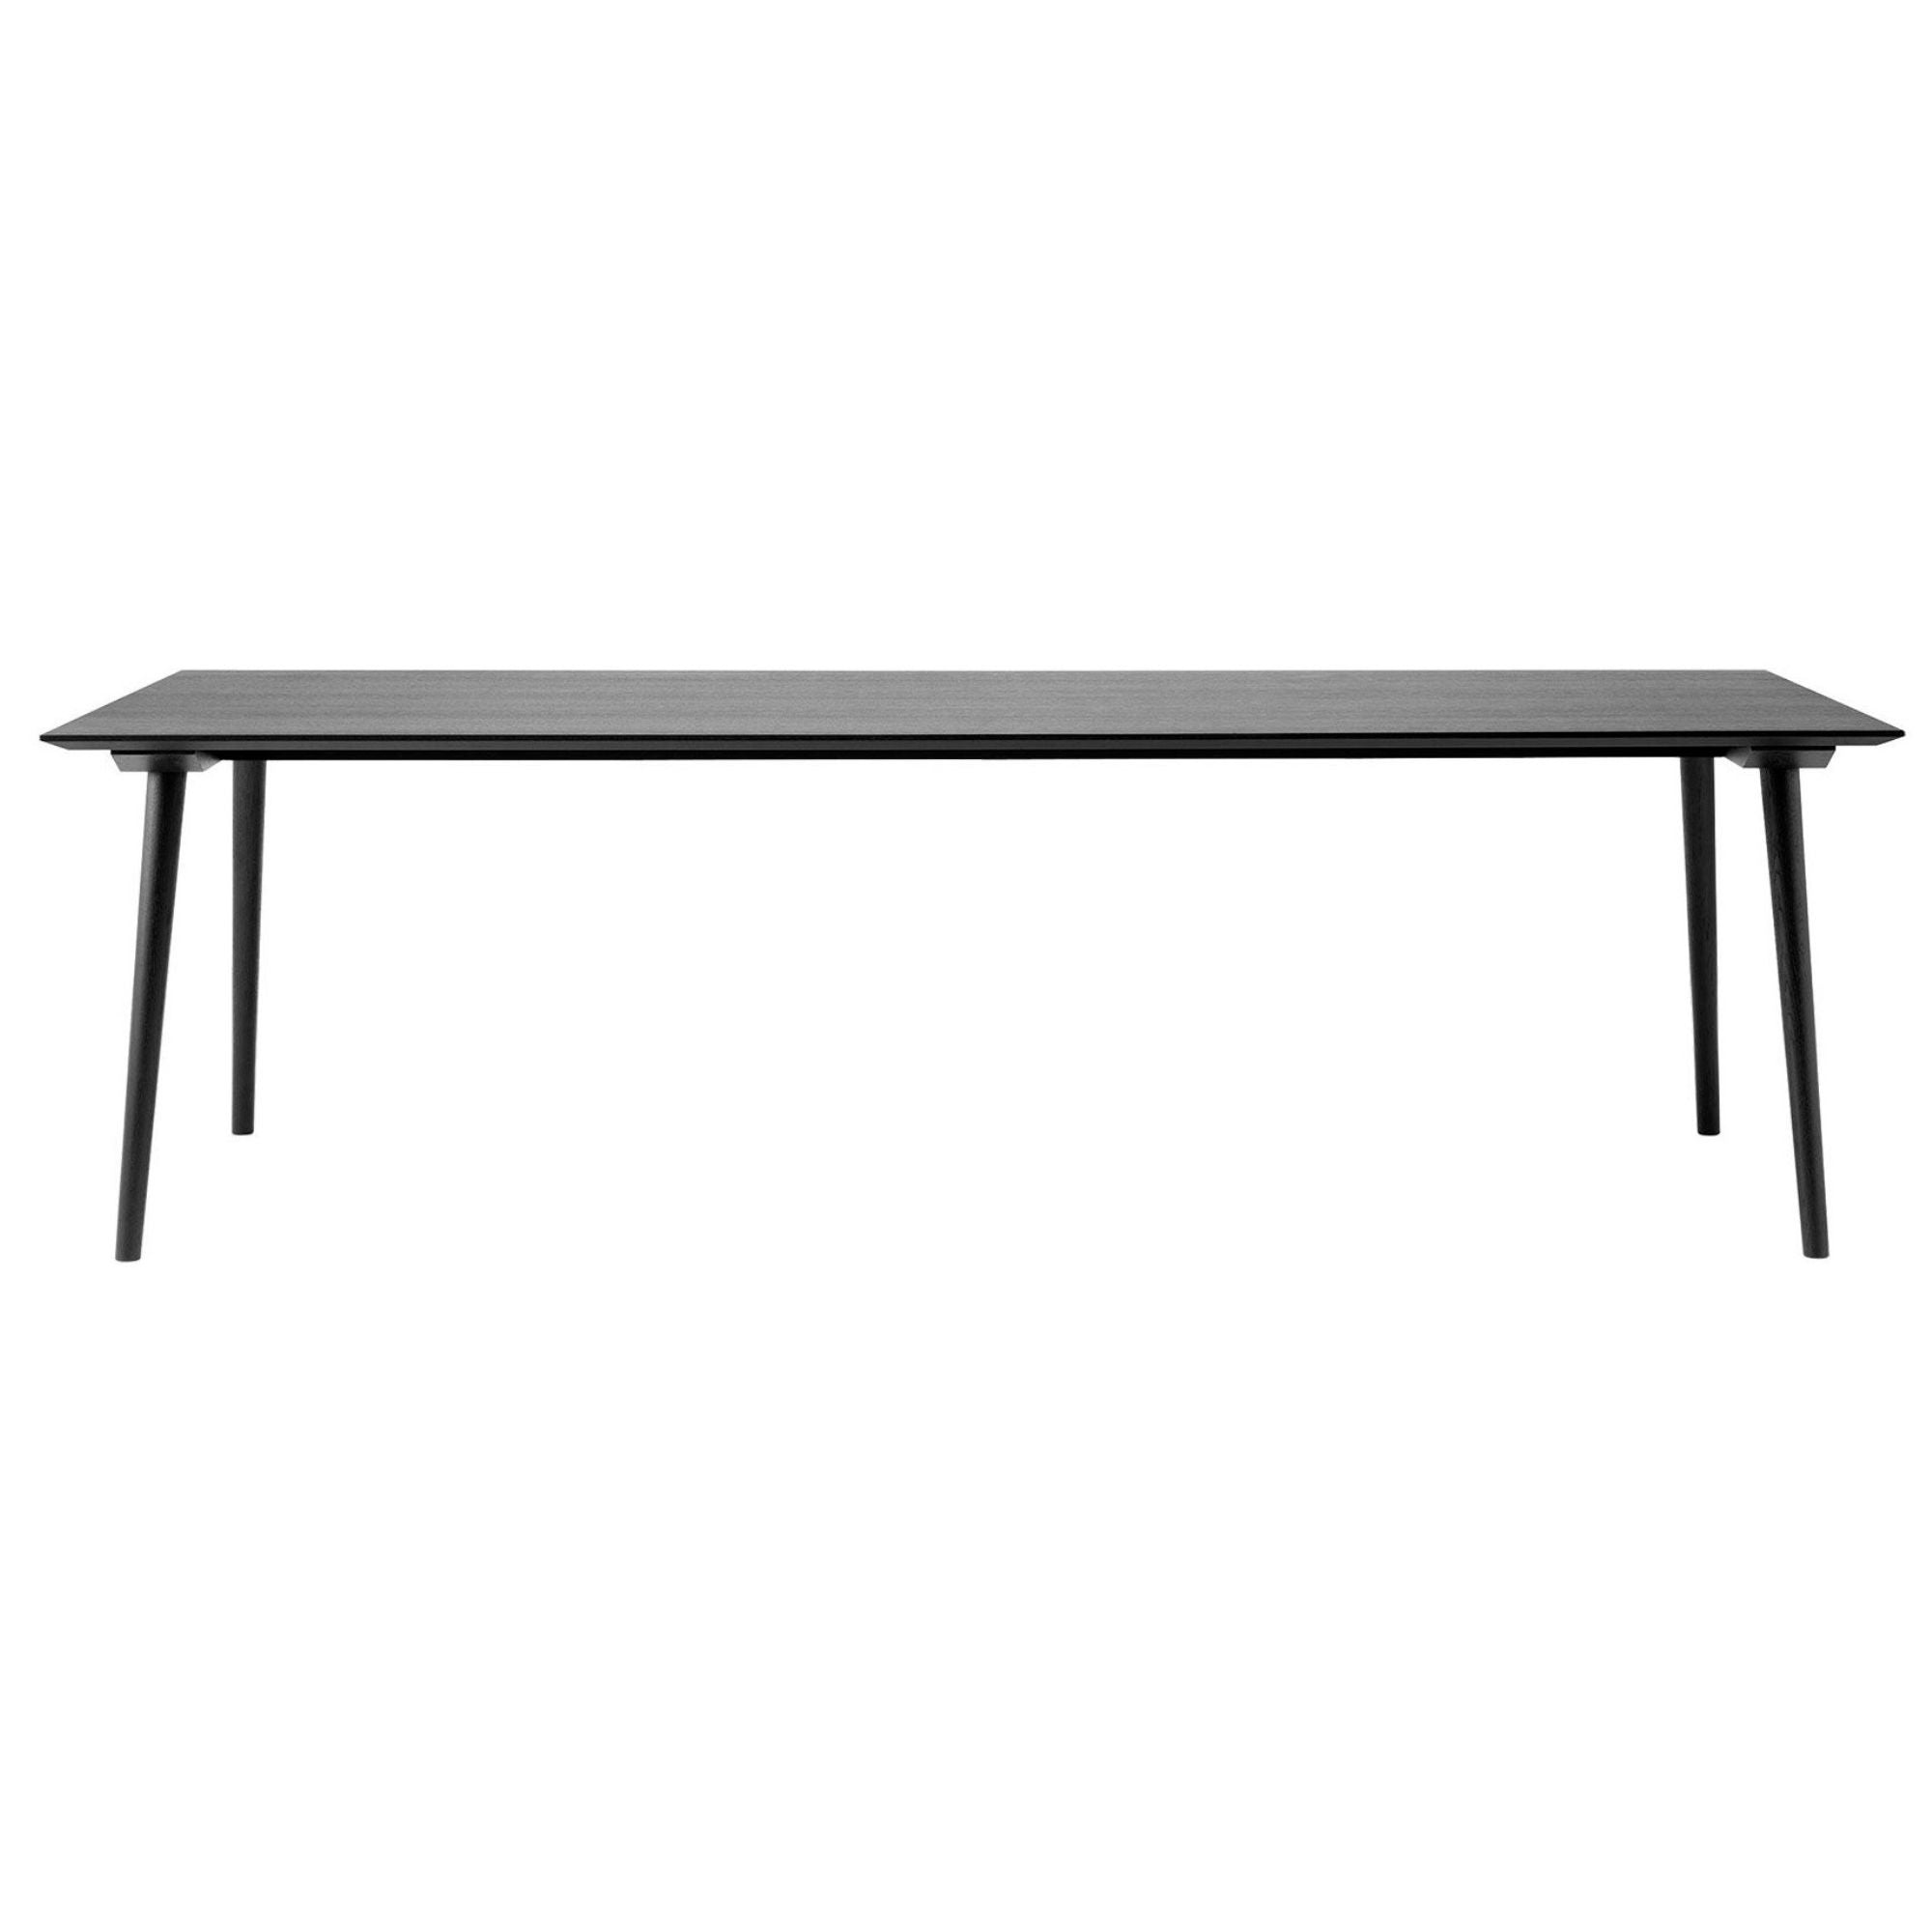 &Tradition SK6 In Between Rectangular Table W100xD250 , Black